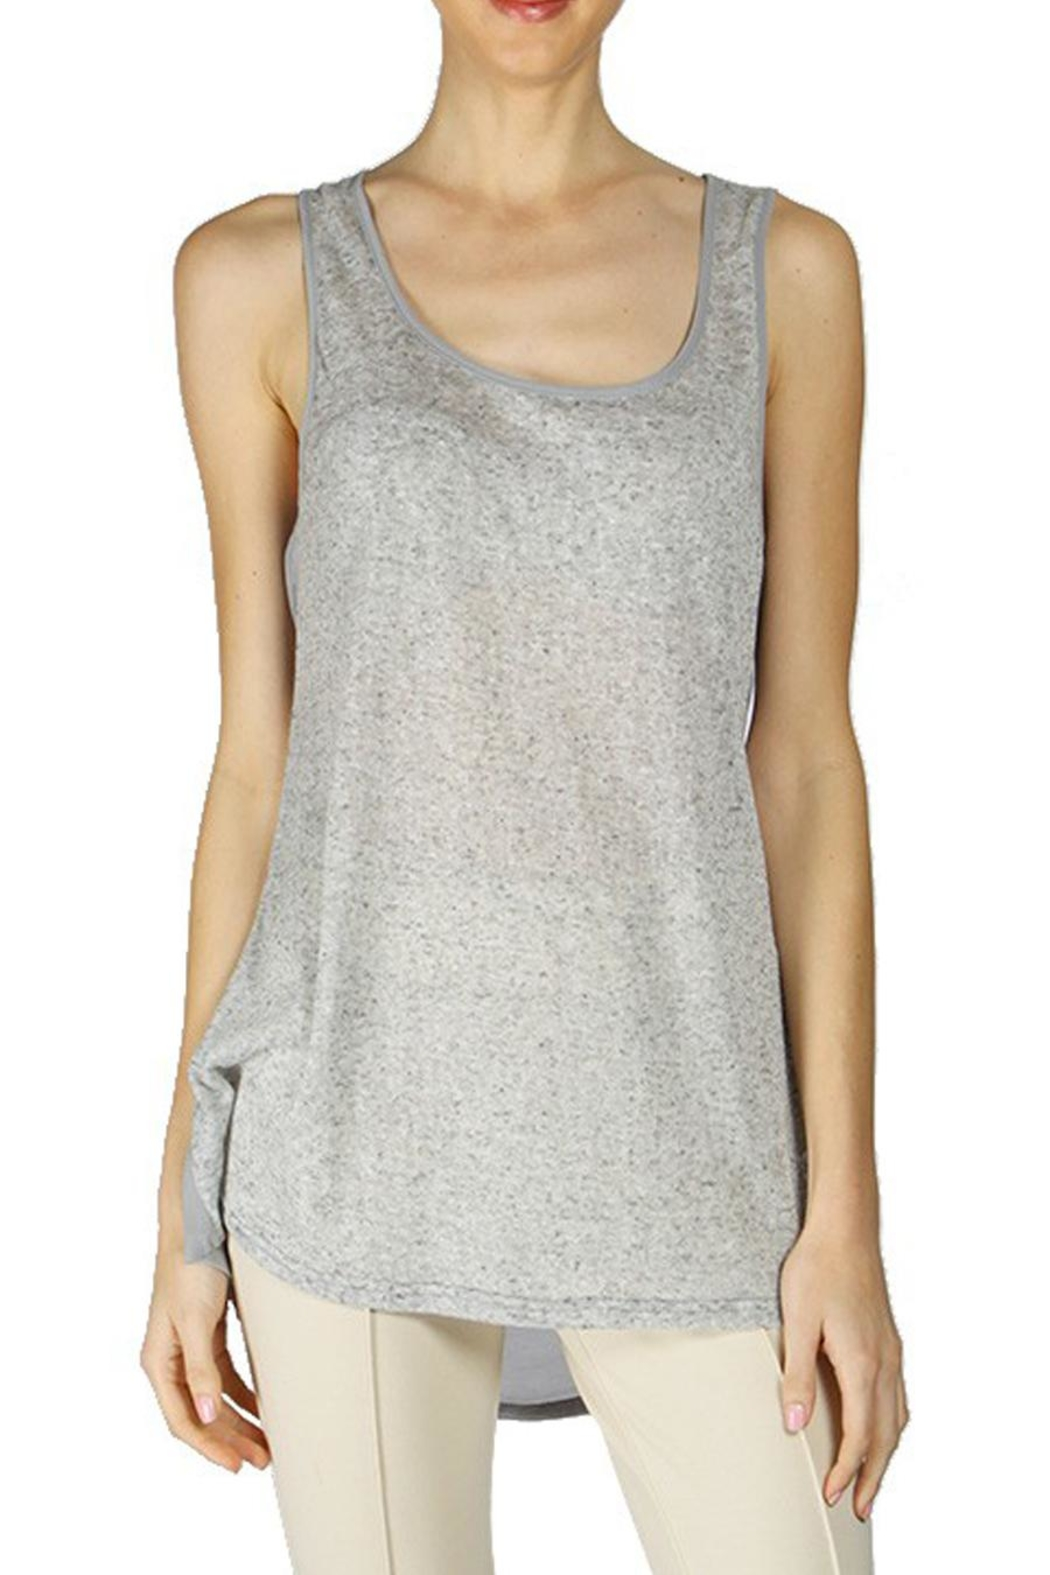 The Vintage Valet Gray Sheer Tanktop - Front Full Image